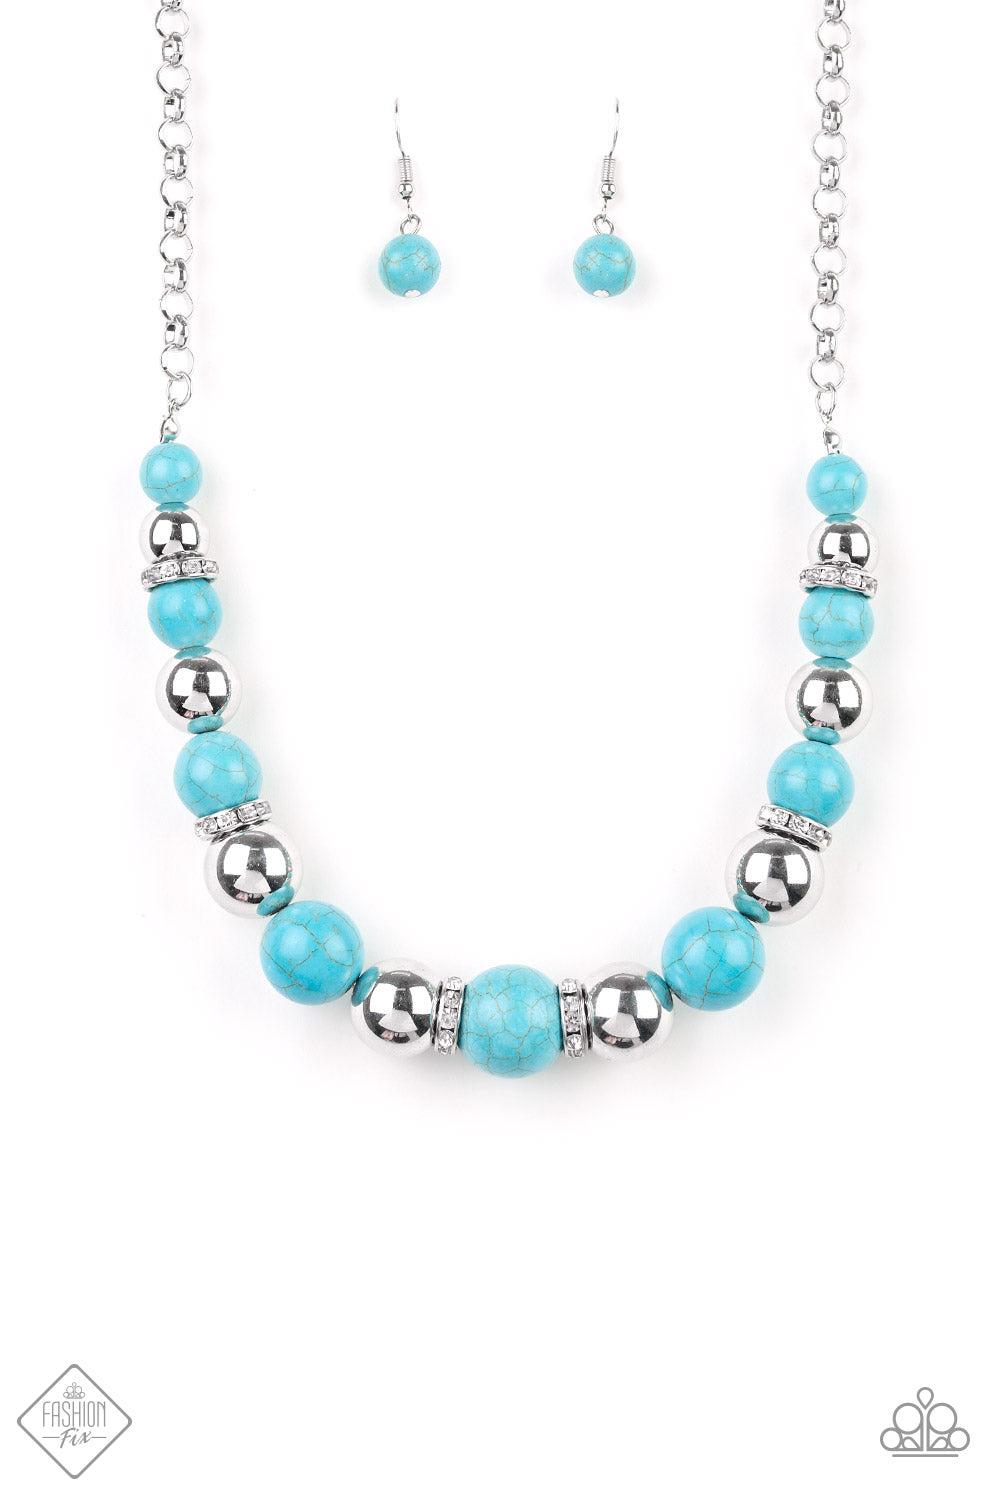 The Ruling Class - Turquoise Necklace - Simply Santa Fe February 2019 - The Paparazzi Fox